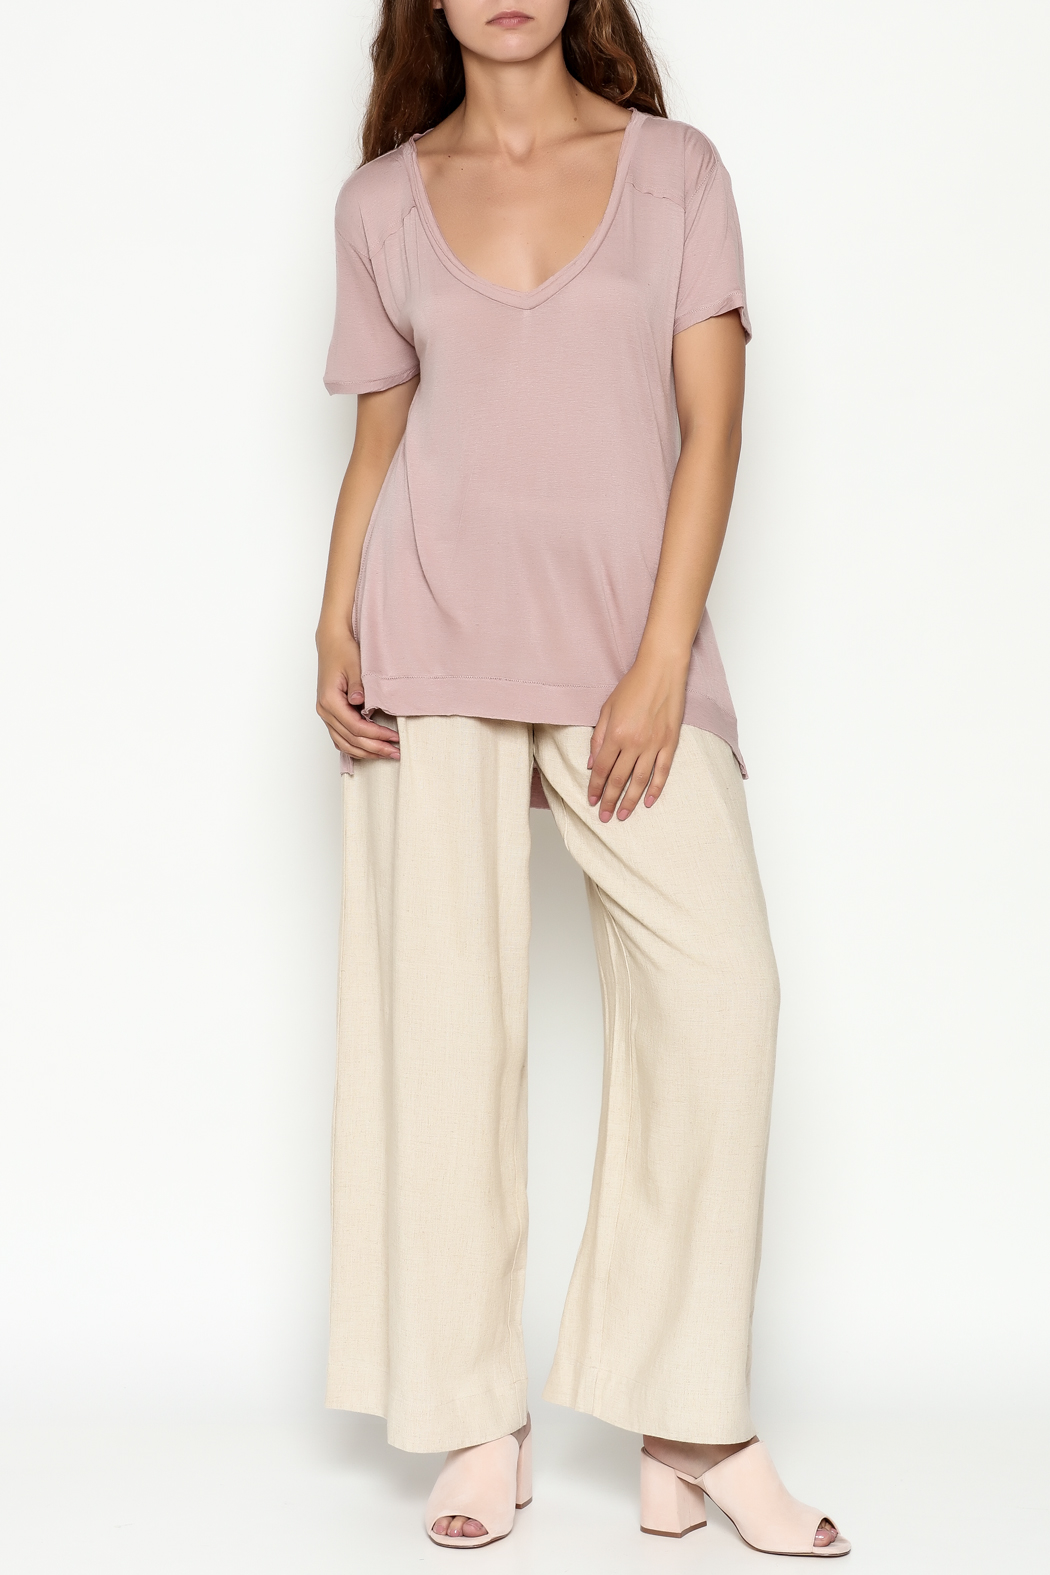 Olive & Oak Mauve V Neck Top - Side Cropped Image